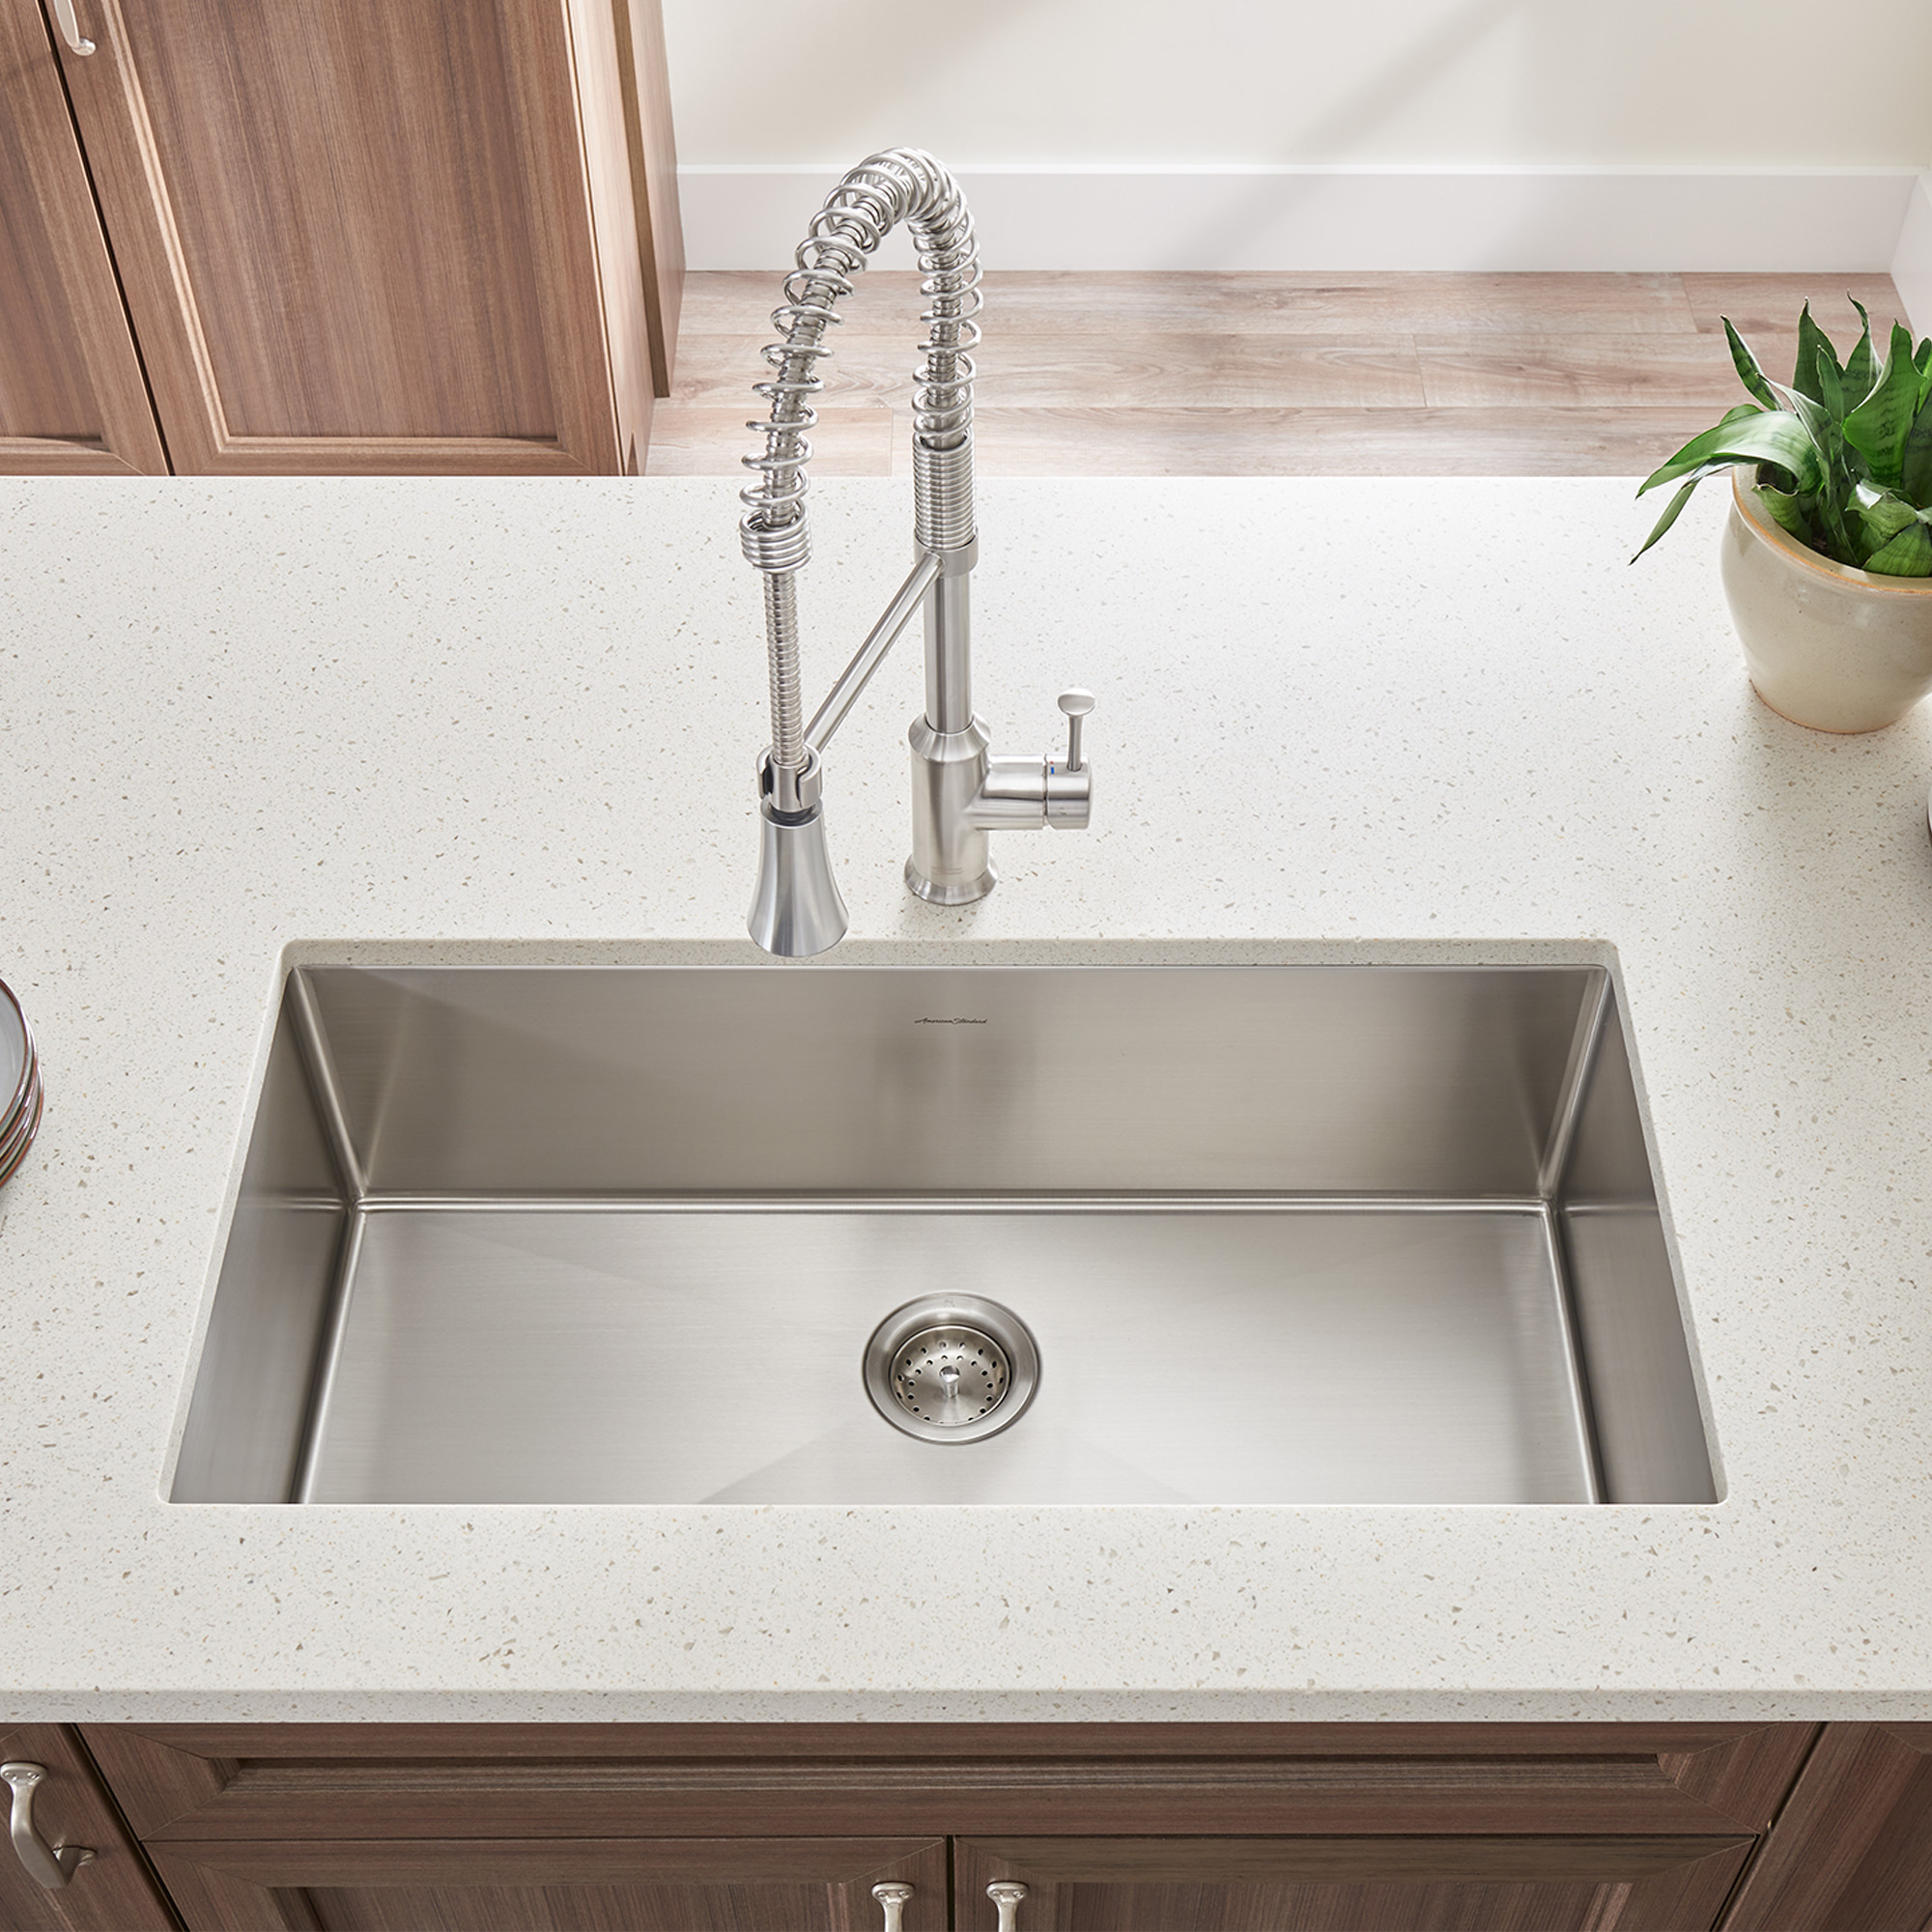 Pekoe 23x18-inch Stainless Steel Kitchen Sink